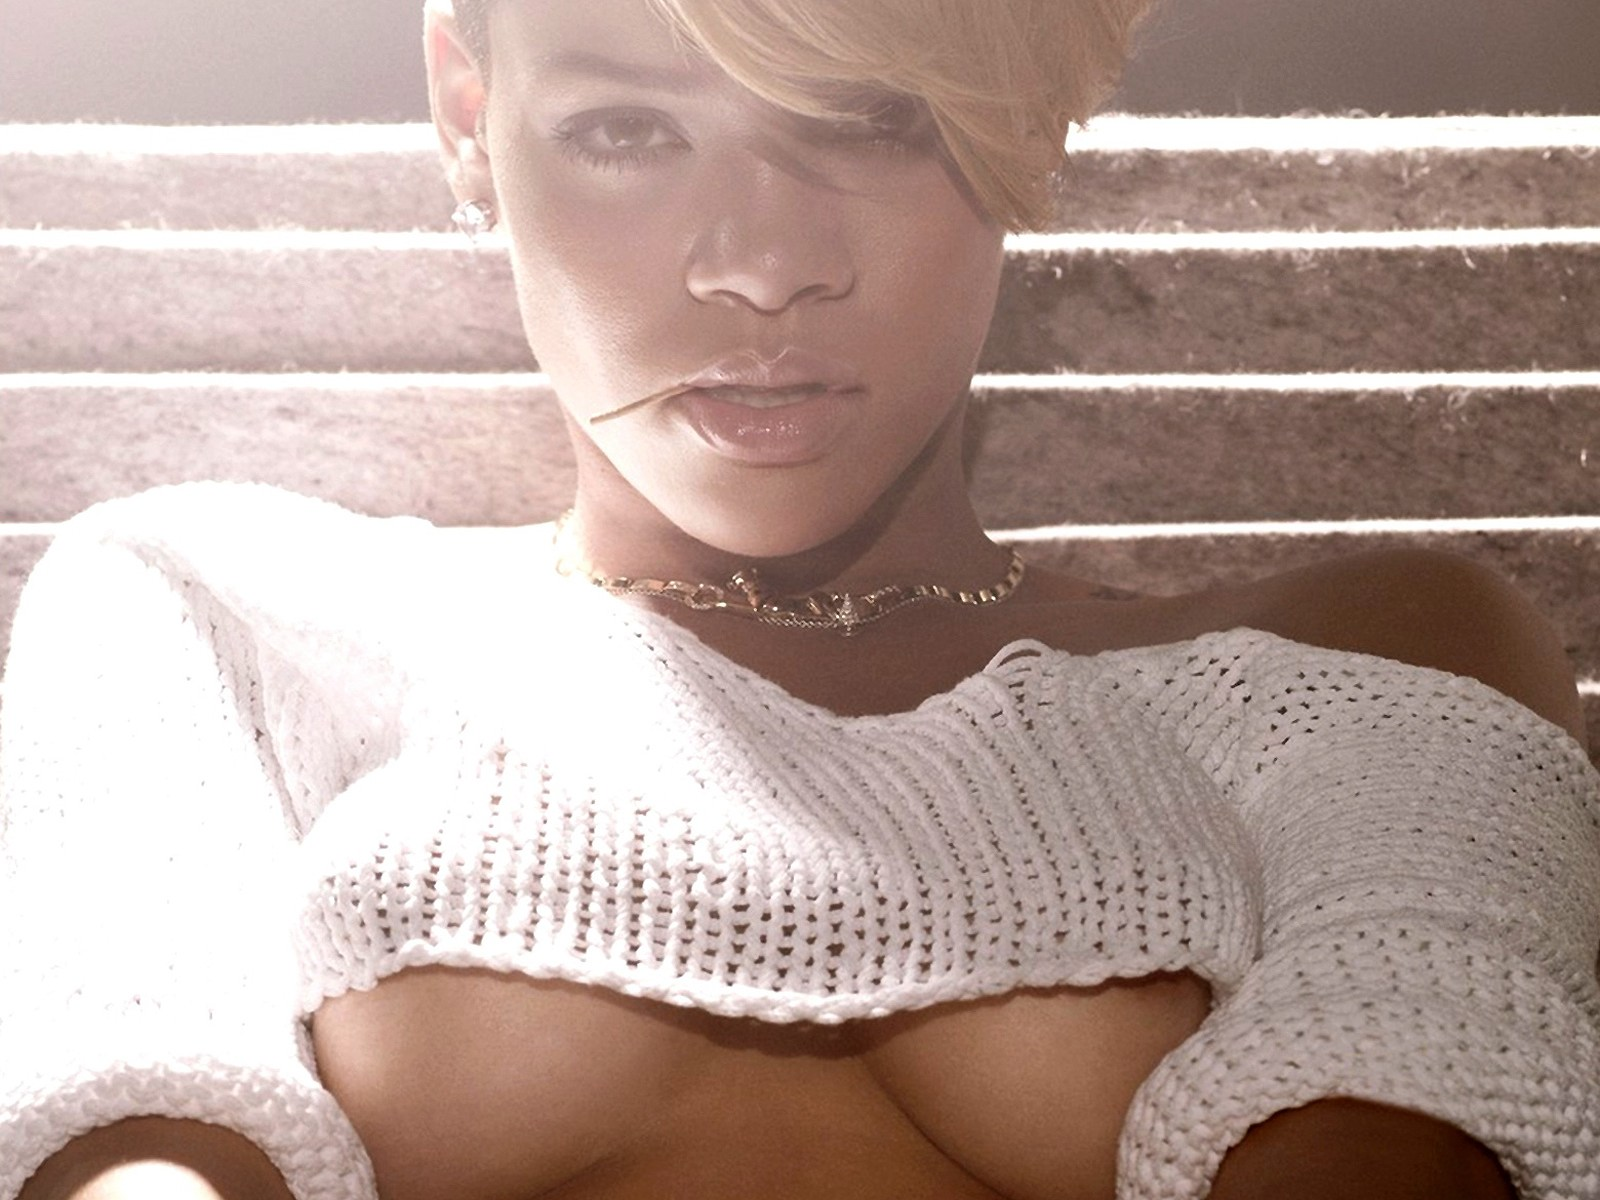 nsfw – rihanna wallpaper